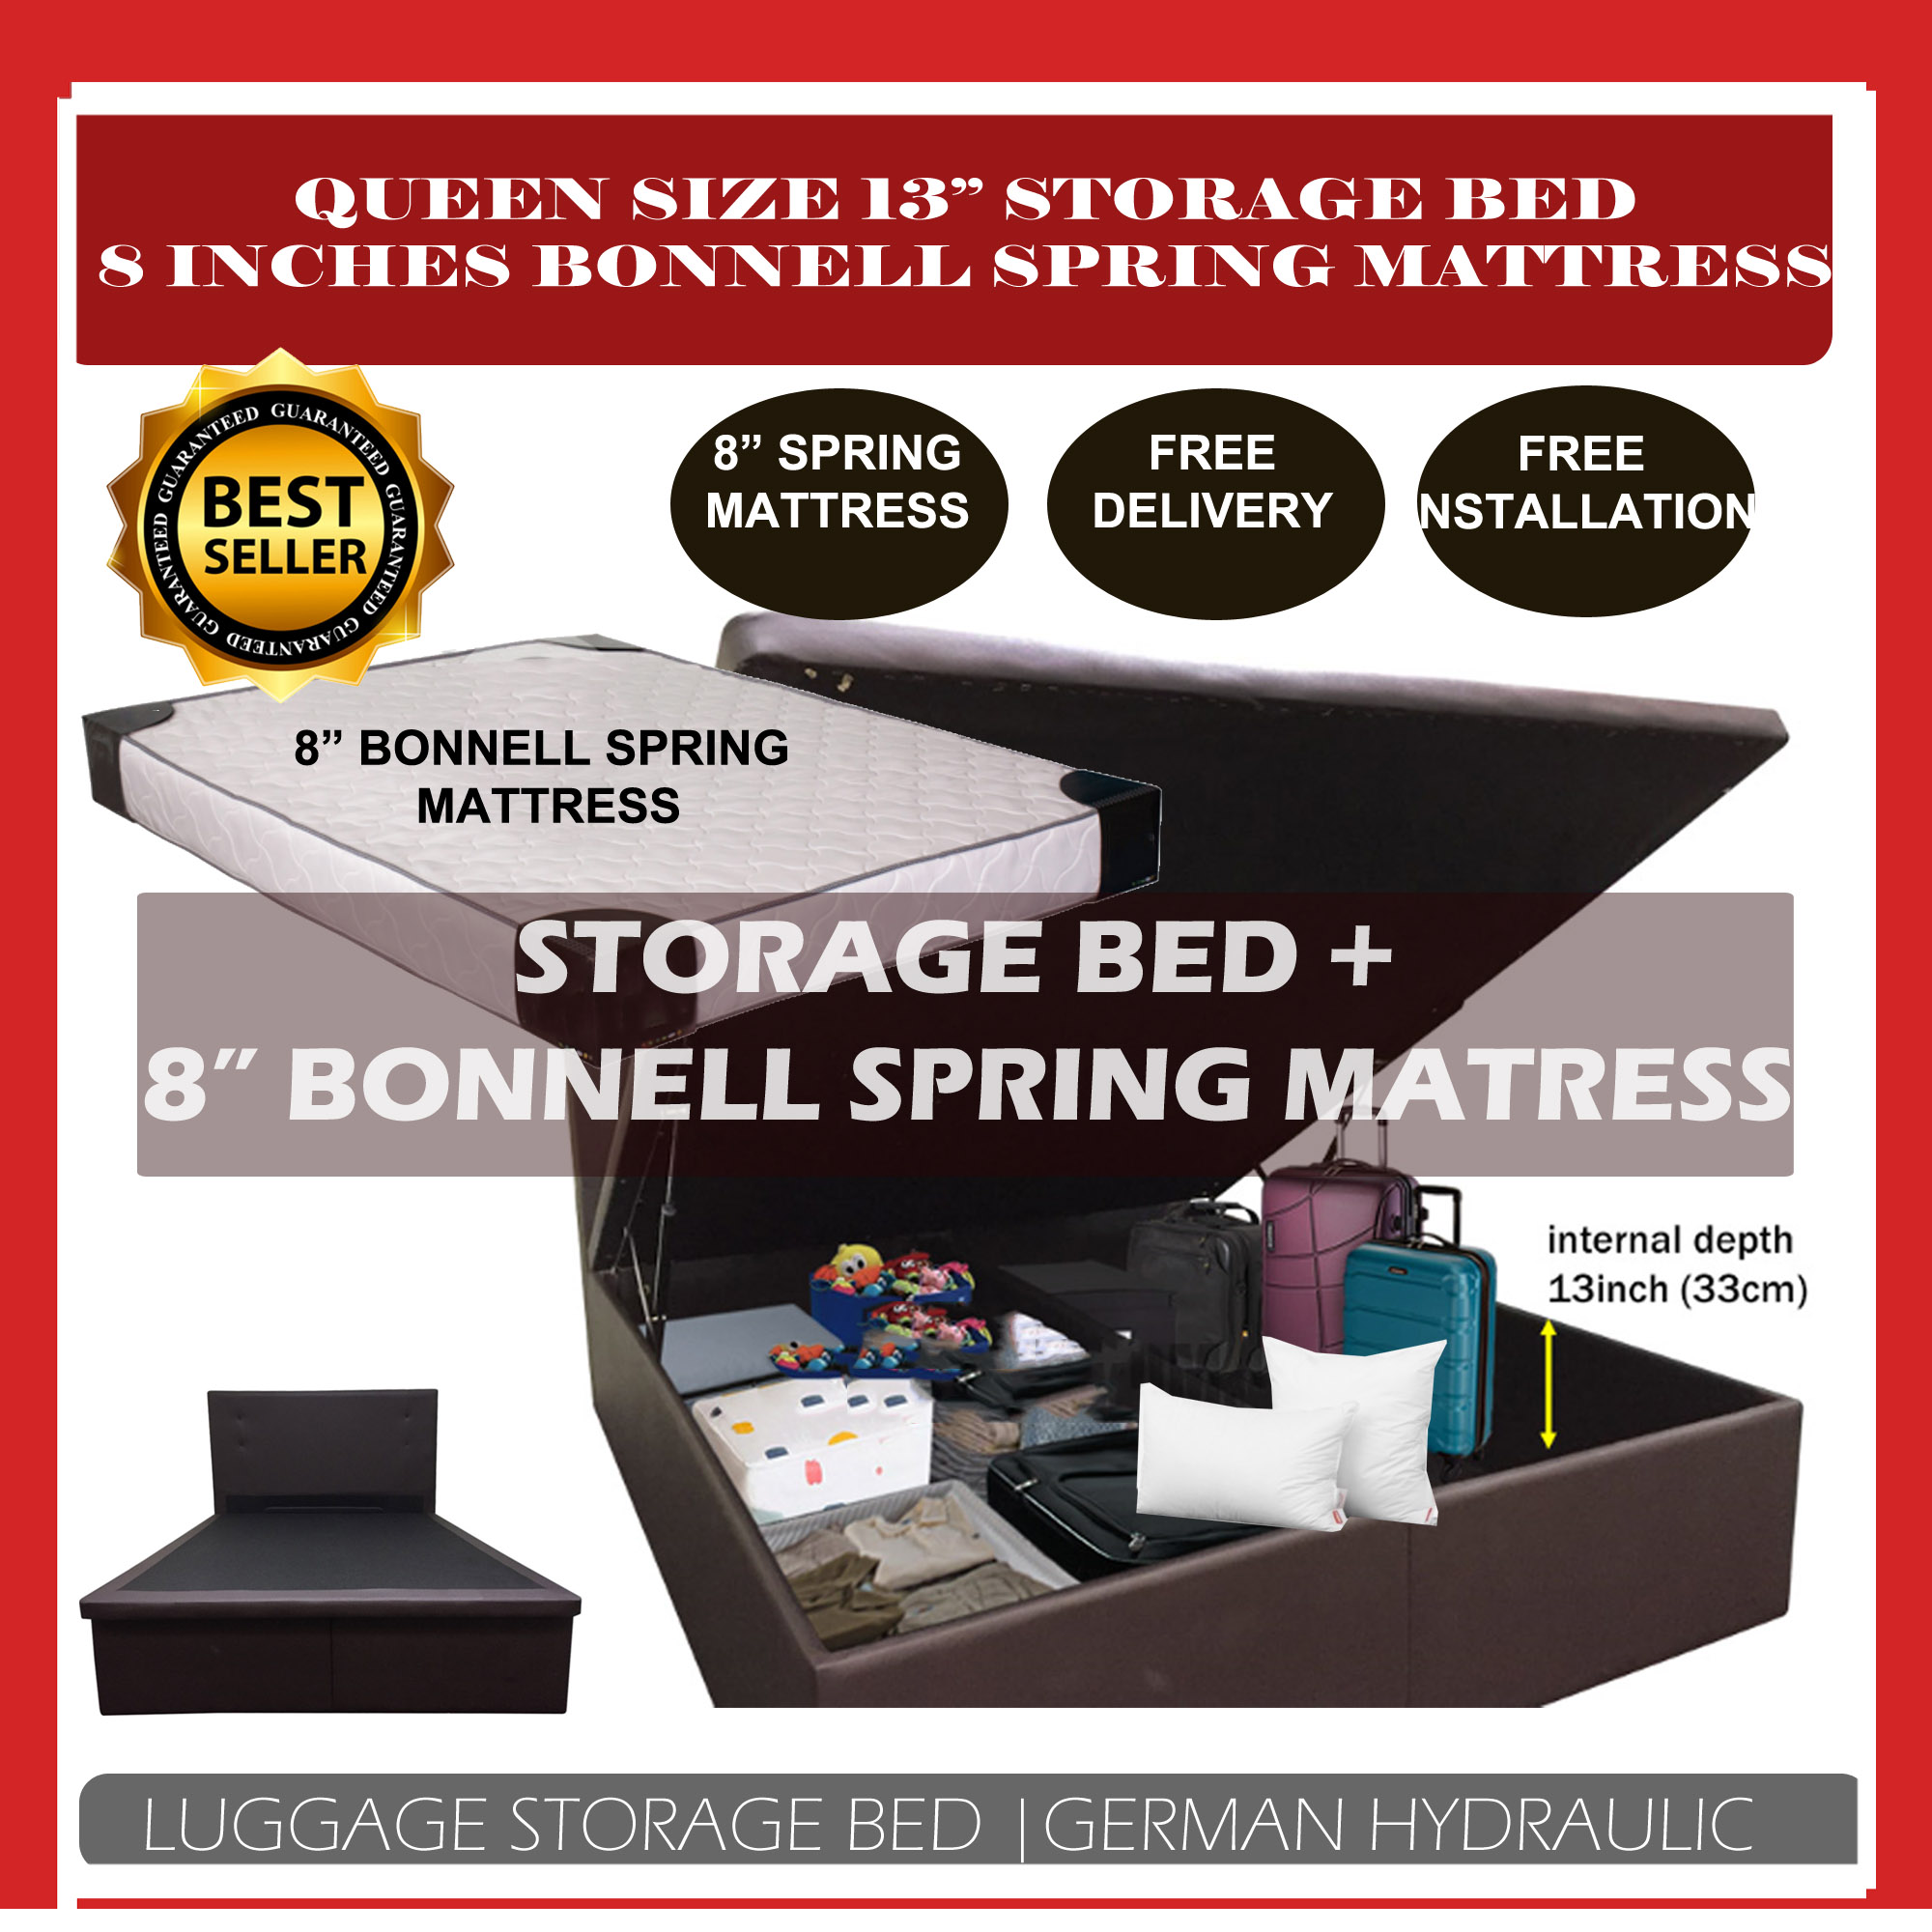 [2Year Warranty] [BUNDLE DEAL] 8 Inches Bonnell Spring Mattress + Queen Storage Bed With 13inches Internal Depth [Can put Big Luggage] (Free Delivery and Installation)